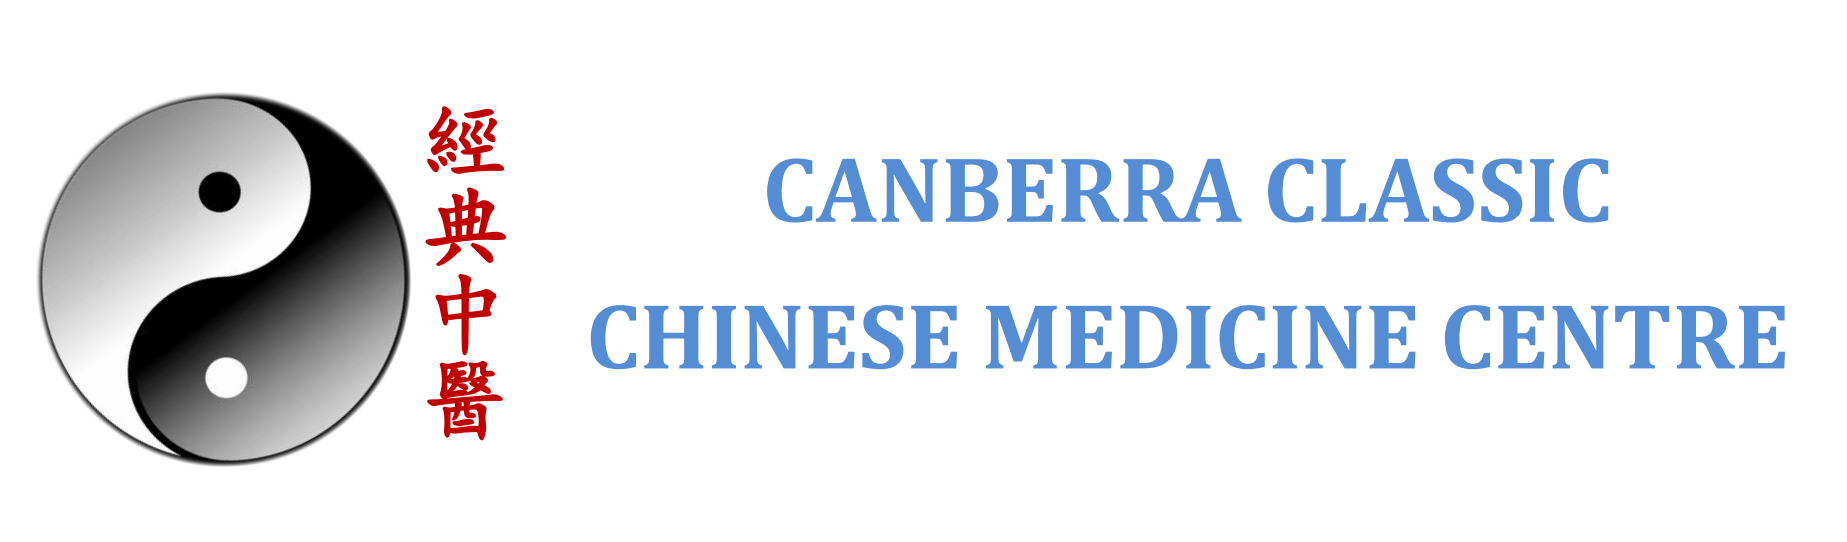 Canberra Classic Chinese Medicine Centre